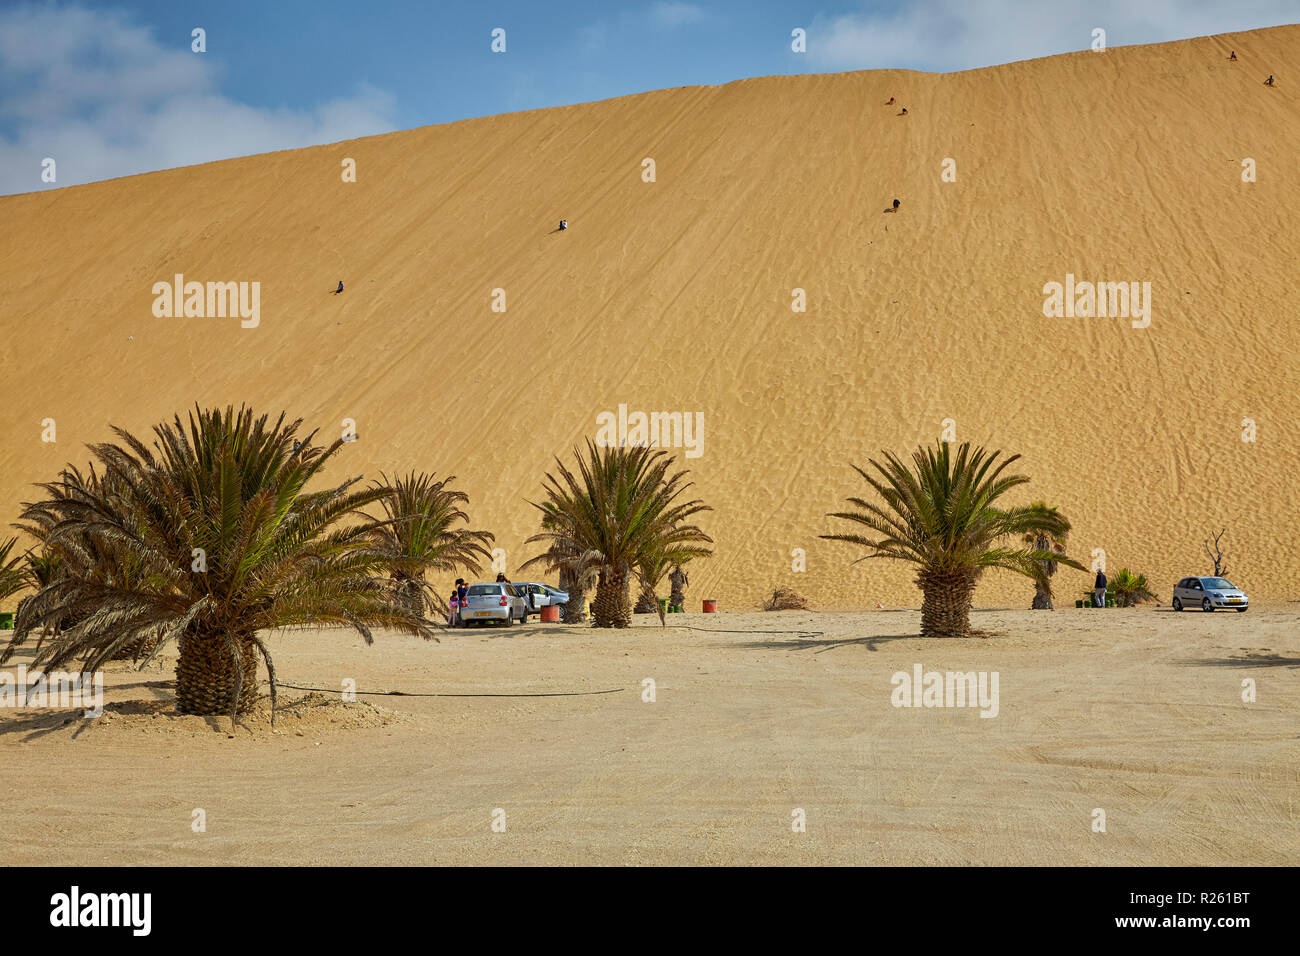 People climbing Dune 7 in Walvis Bay in Namibia, Africa - Stock Image